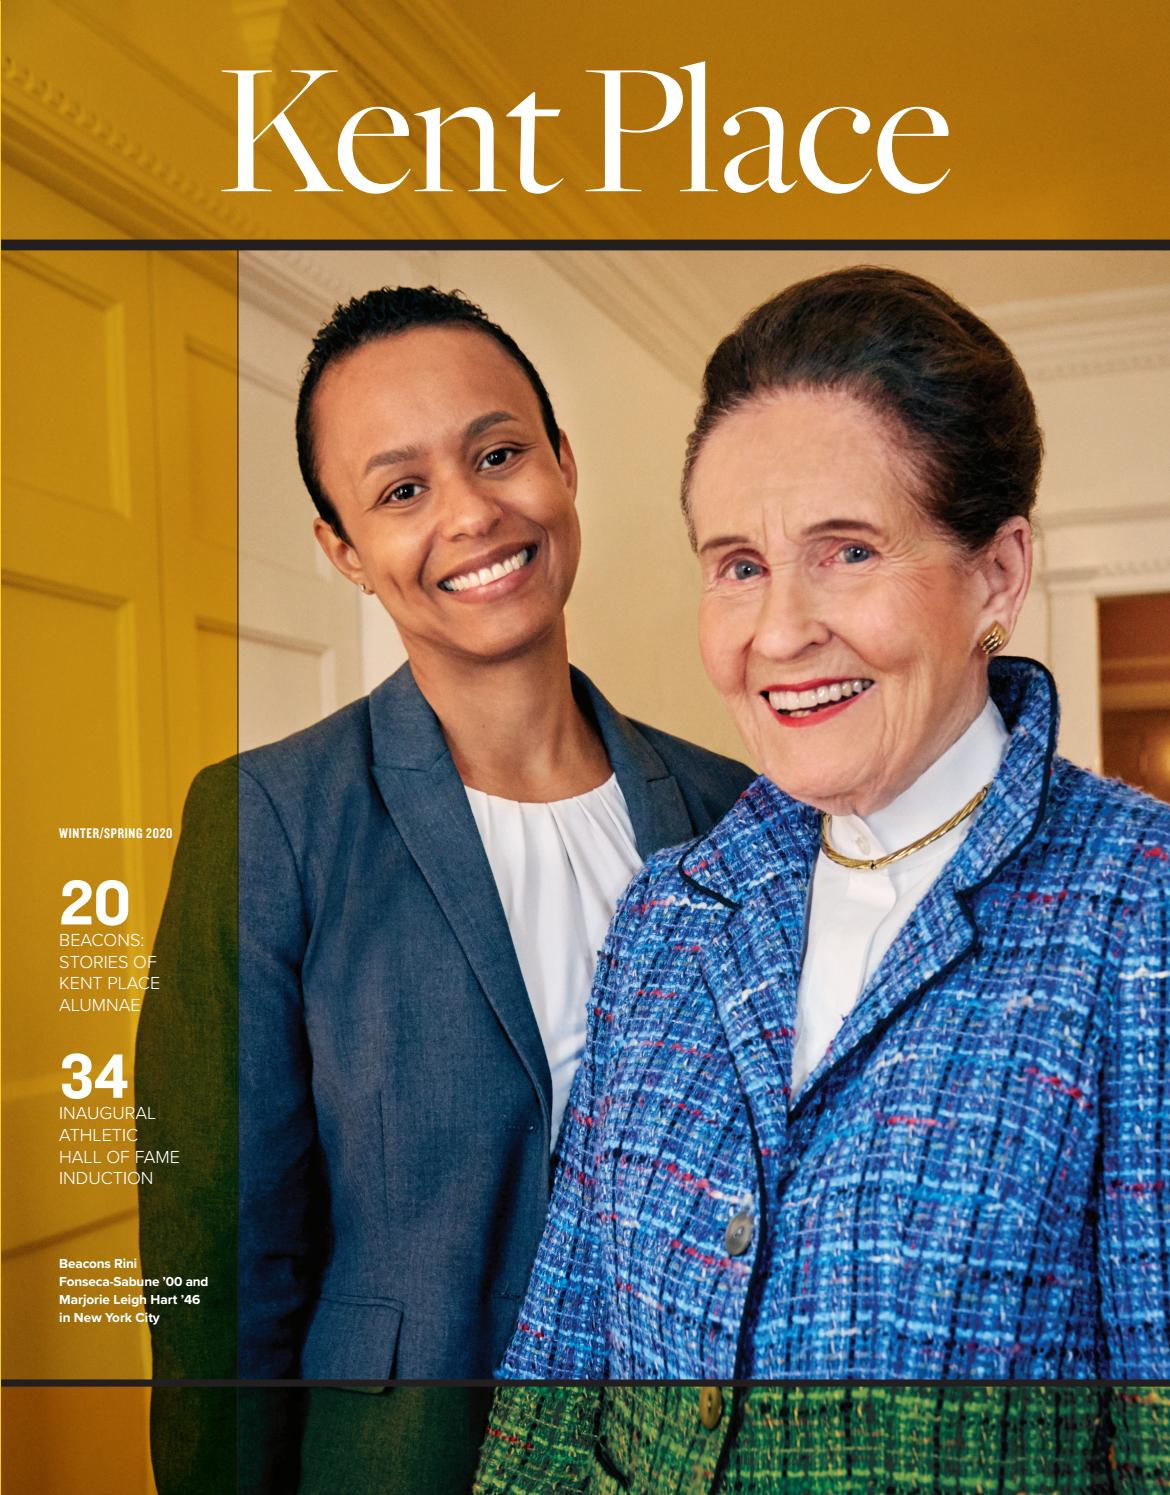 Kent Place Magazine Winter Spring 2020 By Kent Place School Issuu Is really joseph alcoff, his mother jewish feminist philosophy professor linda martin alcoff. kent place magazine winter spring 2020